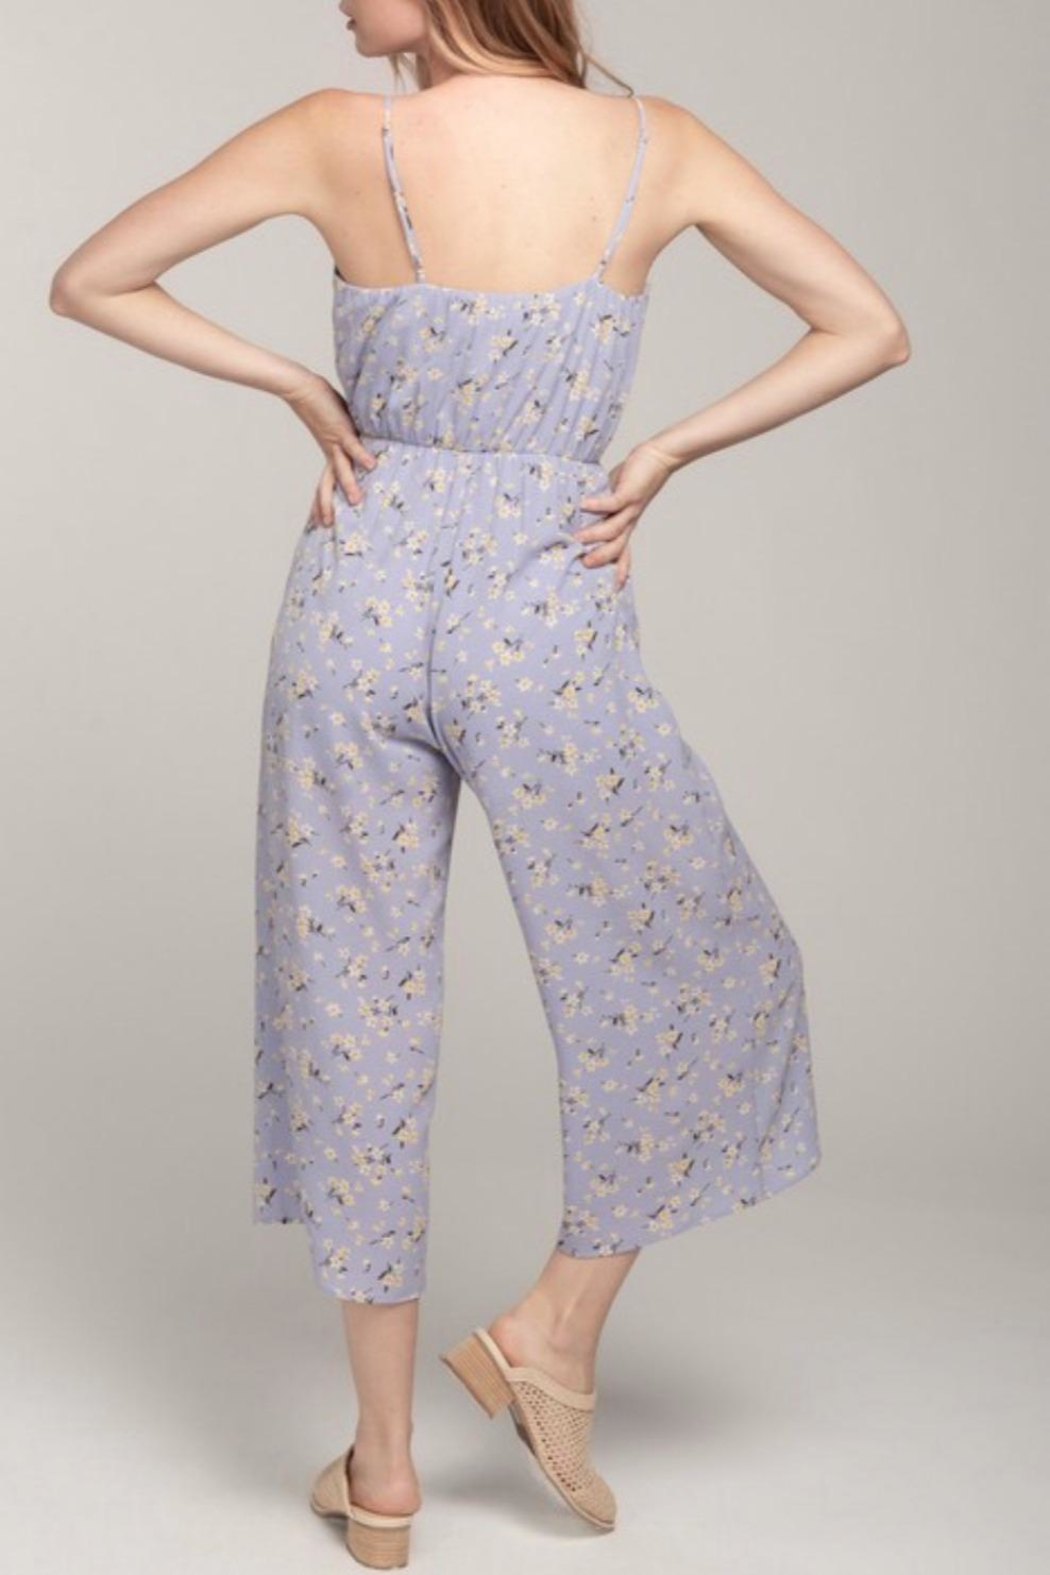 Everly Floral Front-Tie Jumpsuit - Back Cropped Image